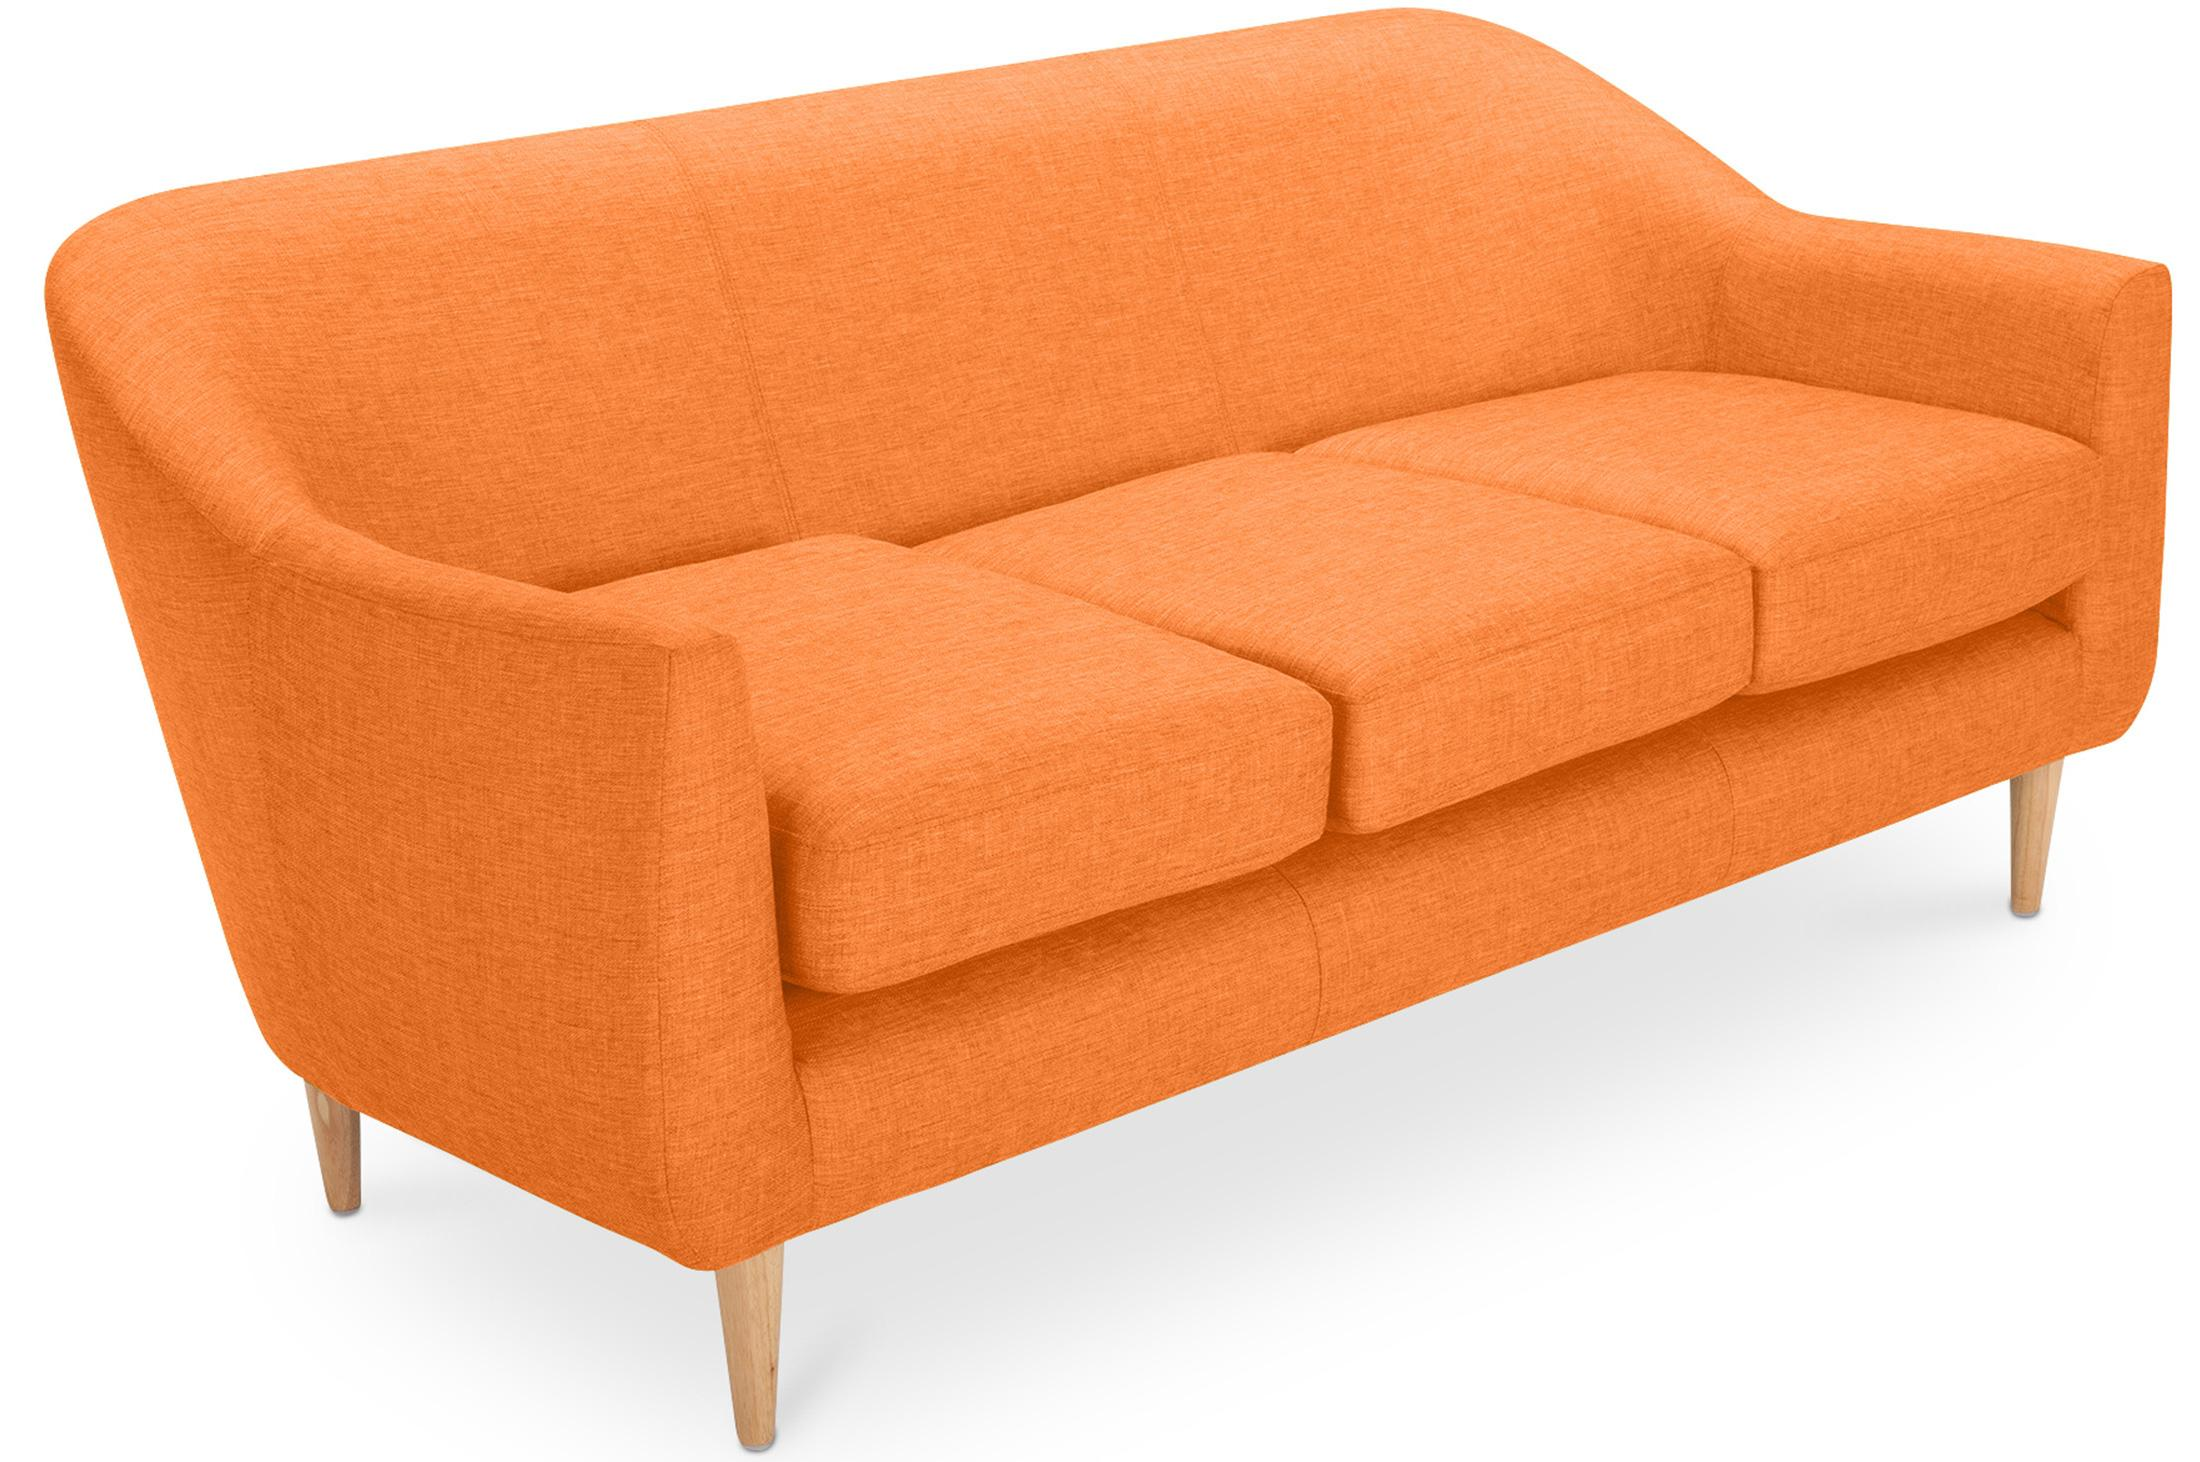 Canap 3 places scandinave tissu orange ronda for Canape 3 place tissu